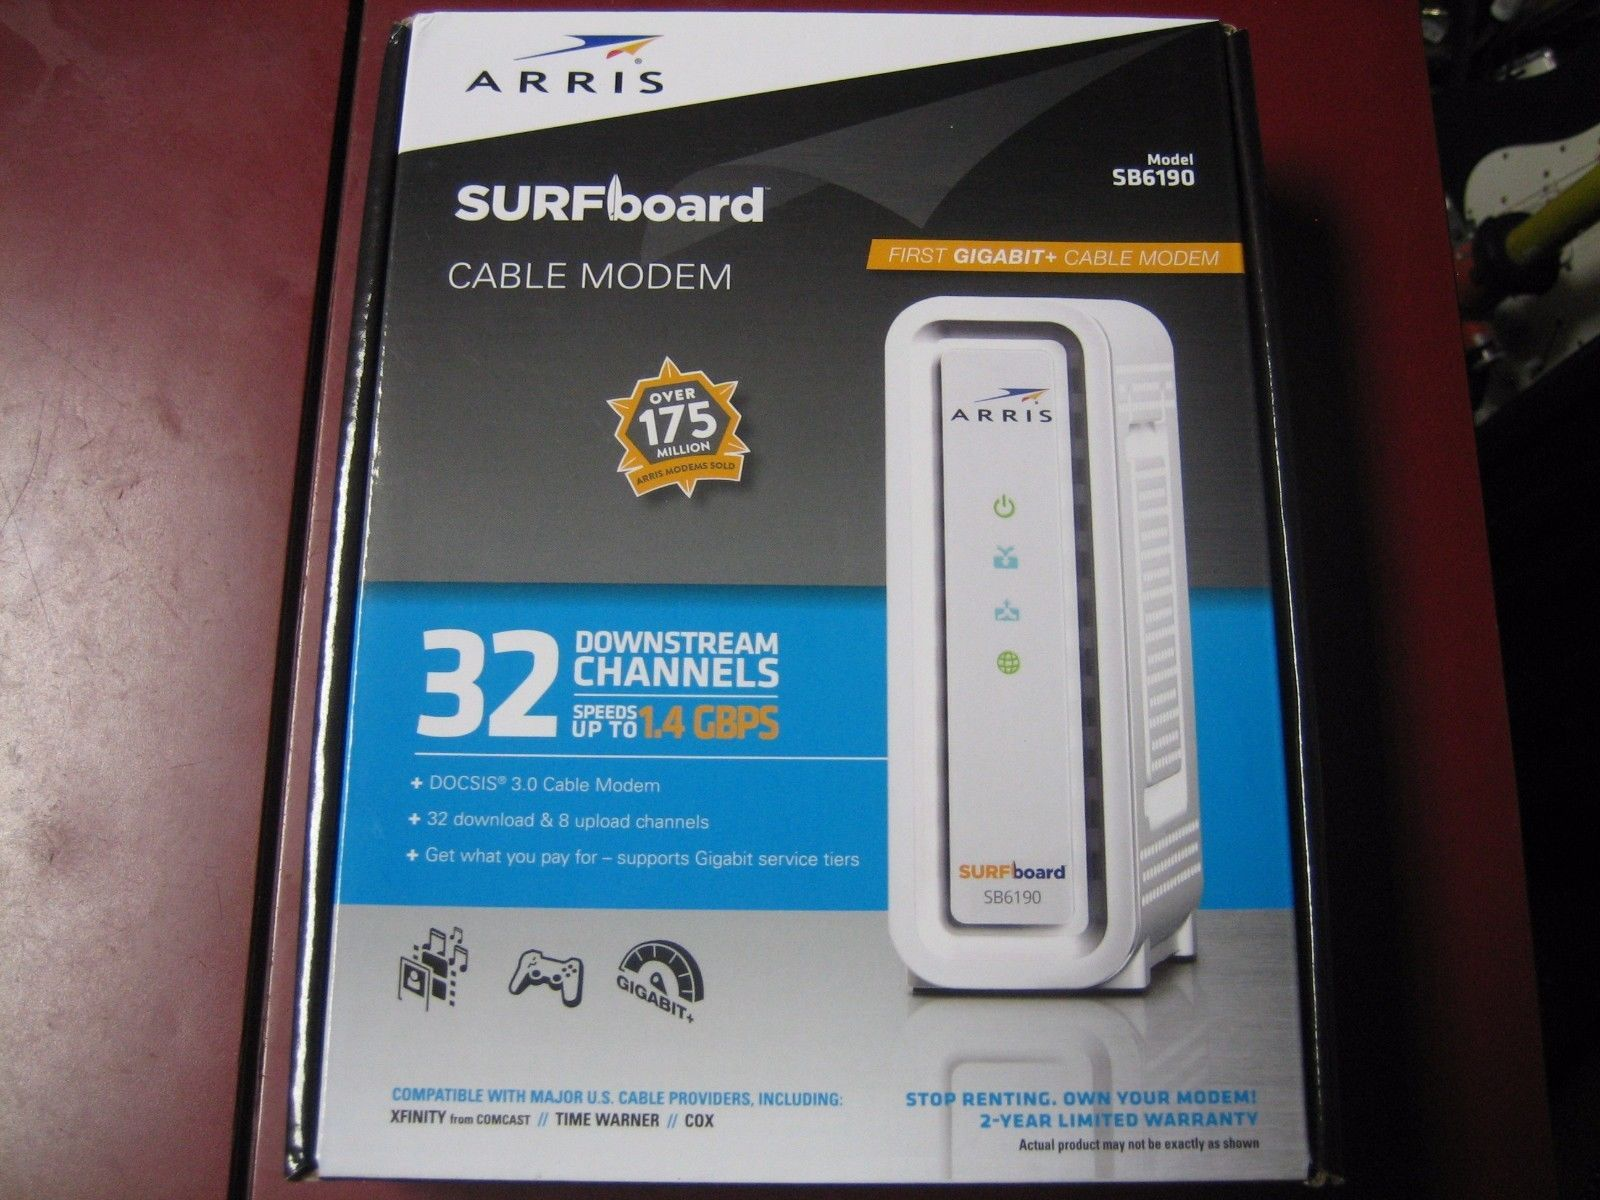 NEW ARRIS SB6190 SURFBOARD CABLE MODEM | Common Shopping | Pinterest ...